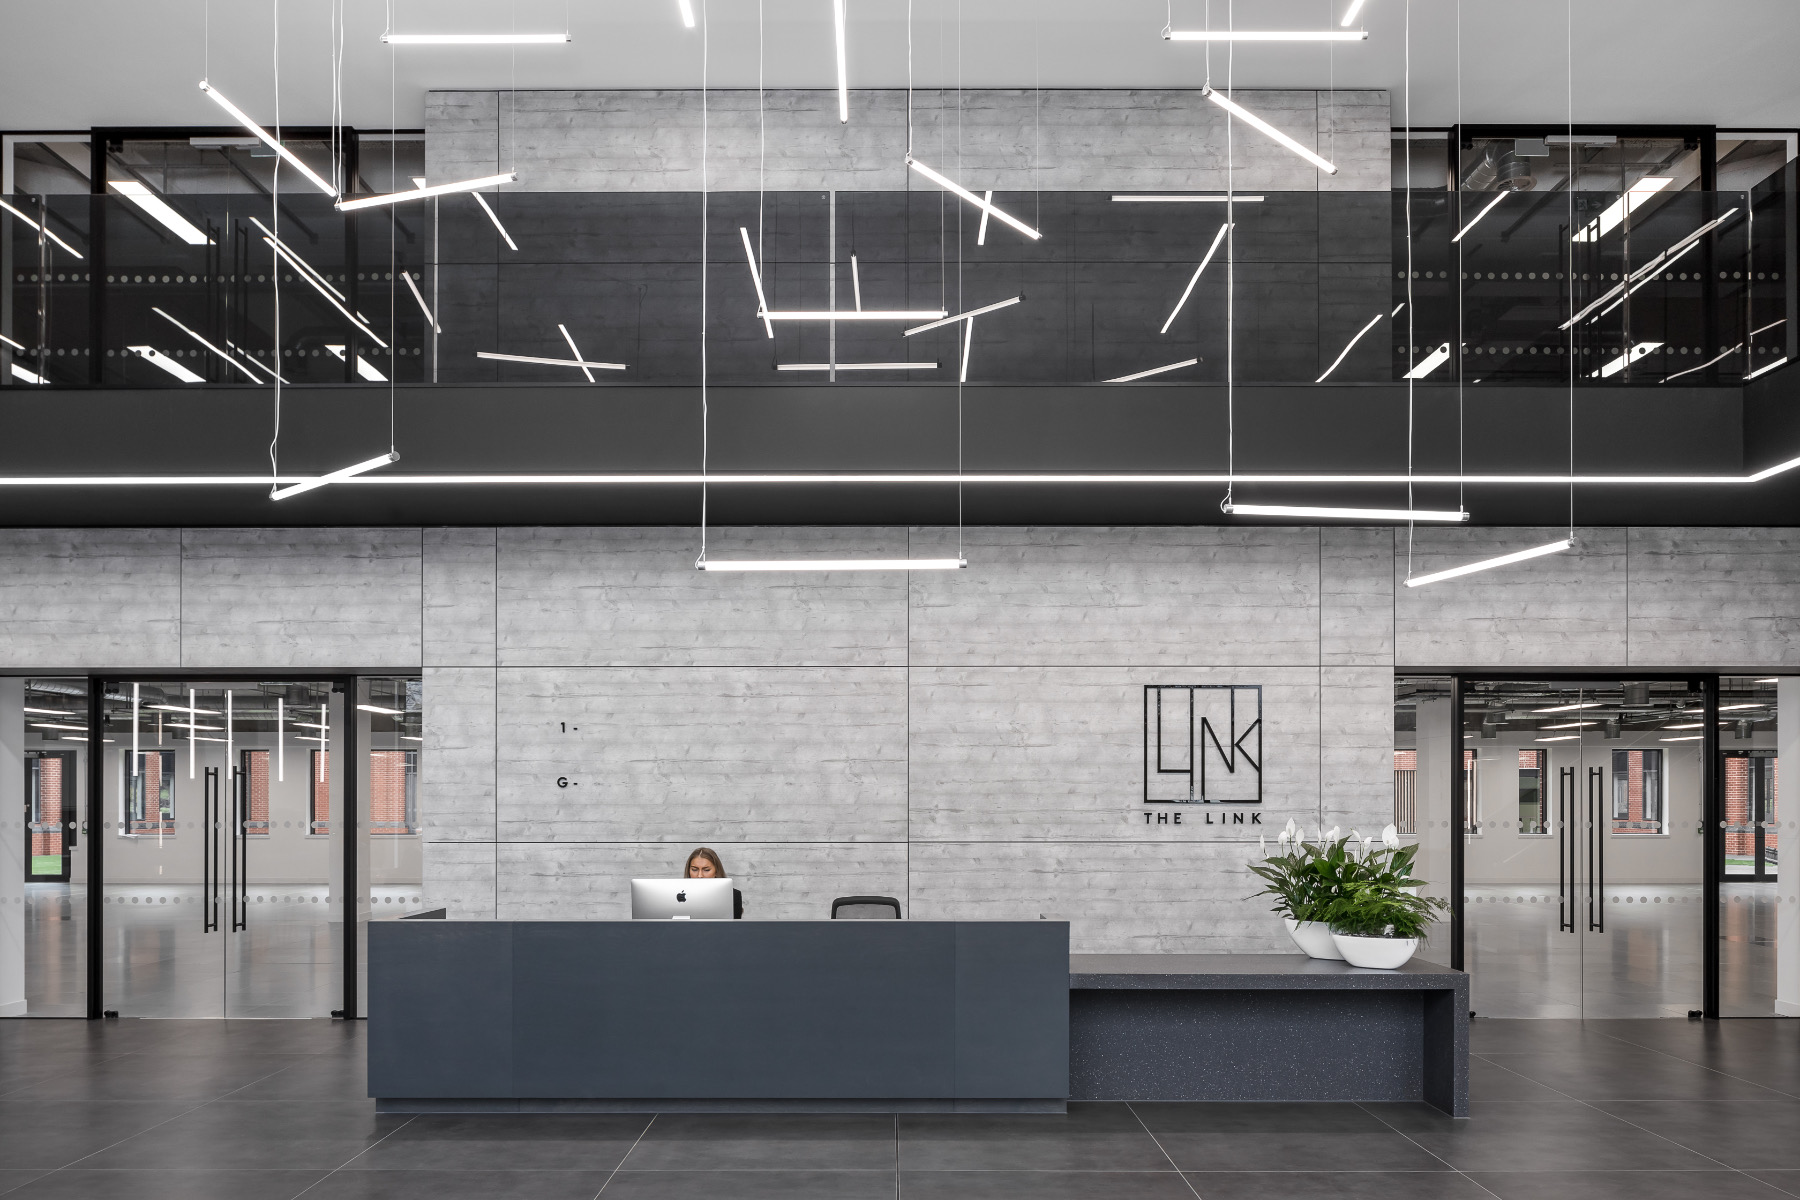 the-link-maidenhead-office-10